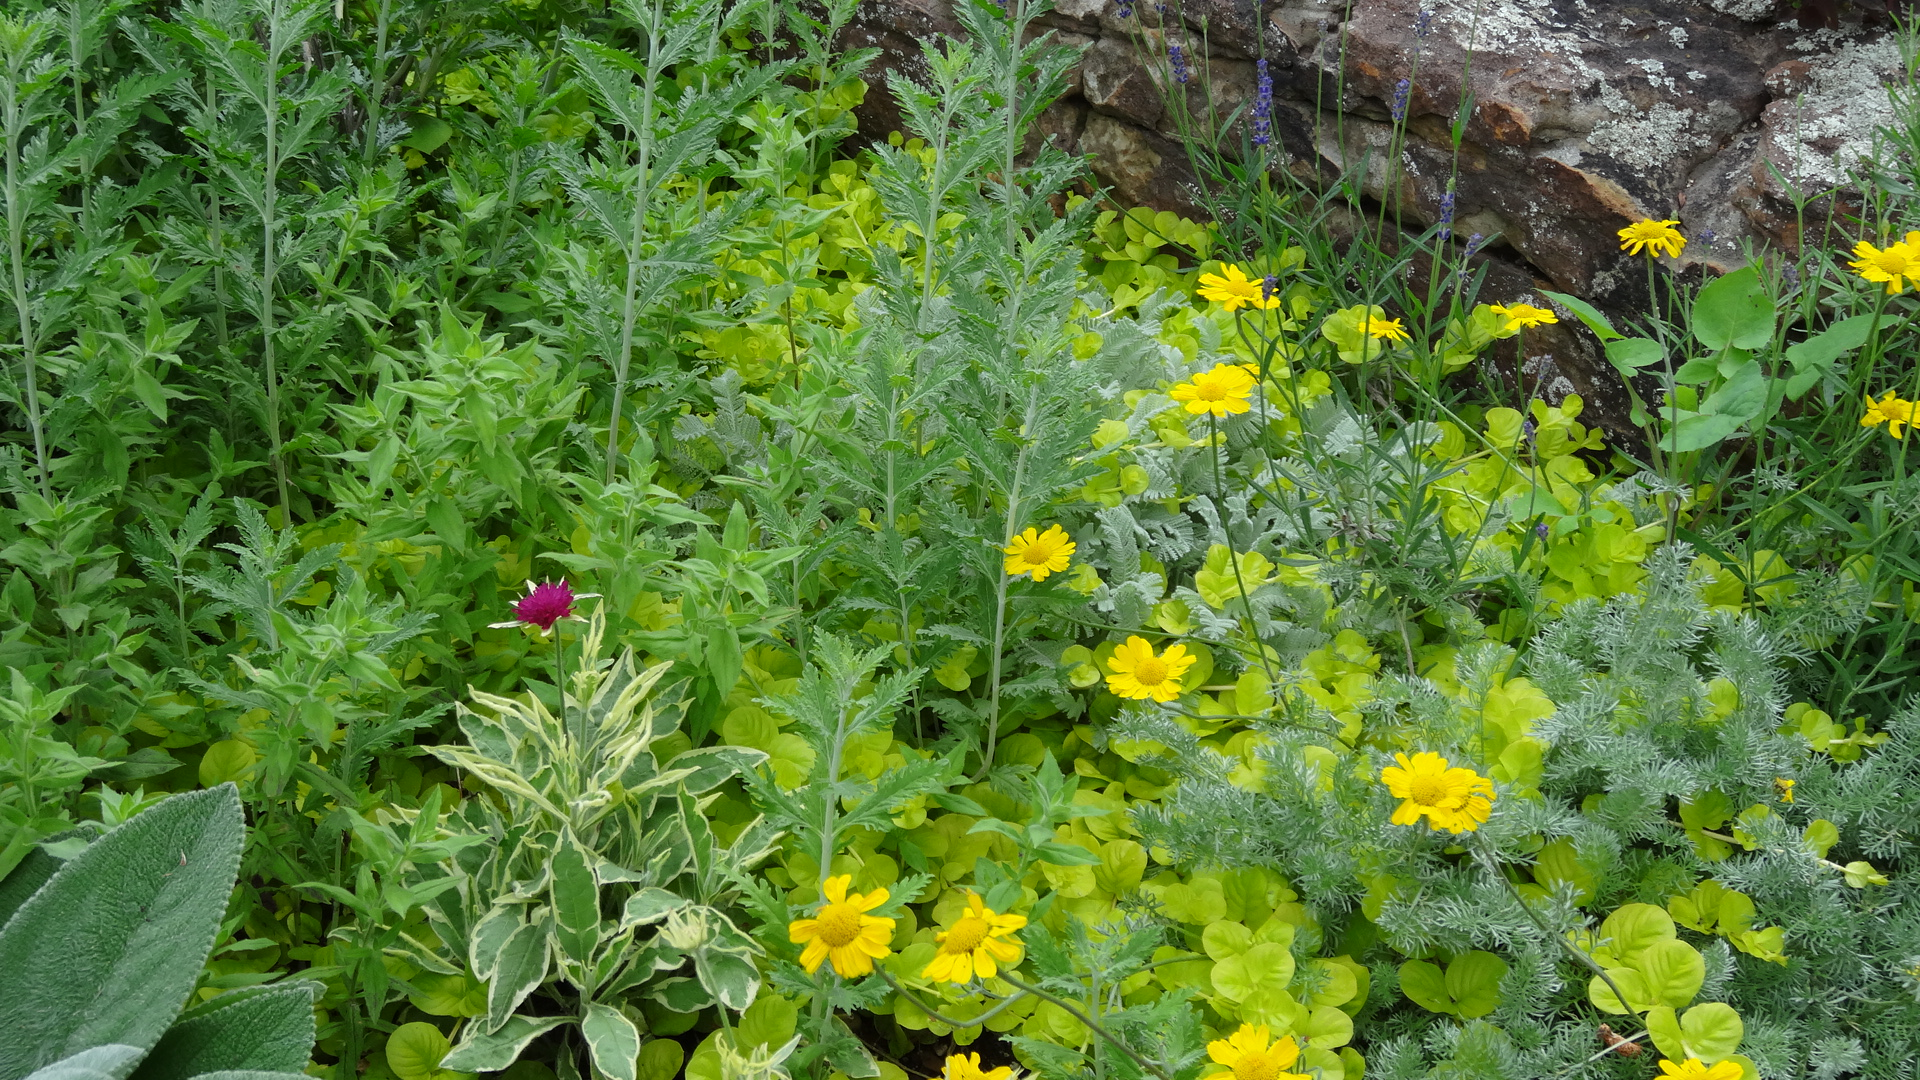 Anthemis marschalliana  being smothered with Russian sage ,  Lysimachia nummularia  'Aurea', and  Zauschneria  'Orange Carpet'